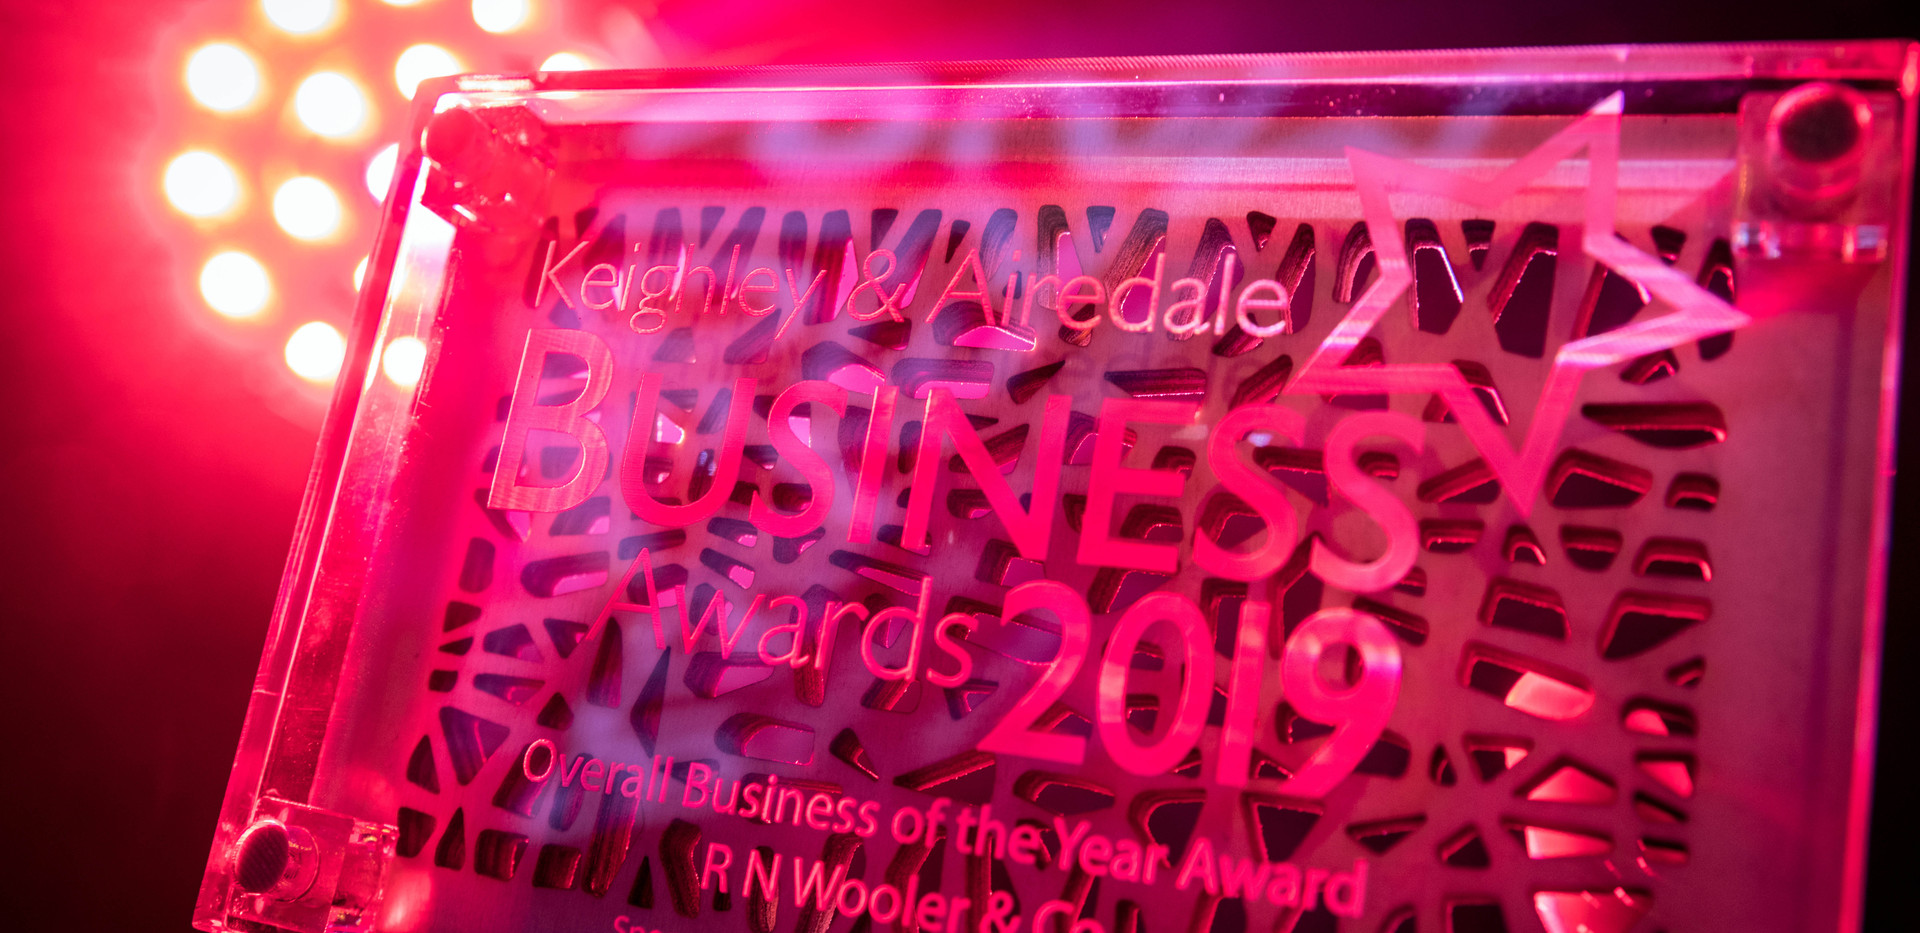 Keighley & Airedale Business Awards